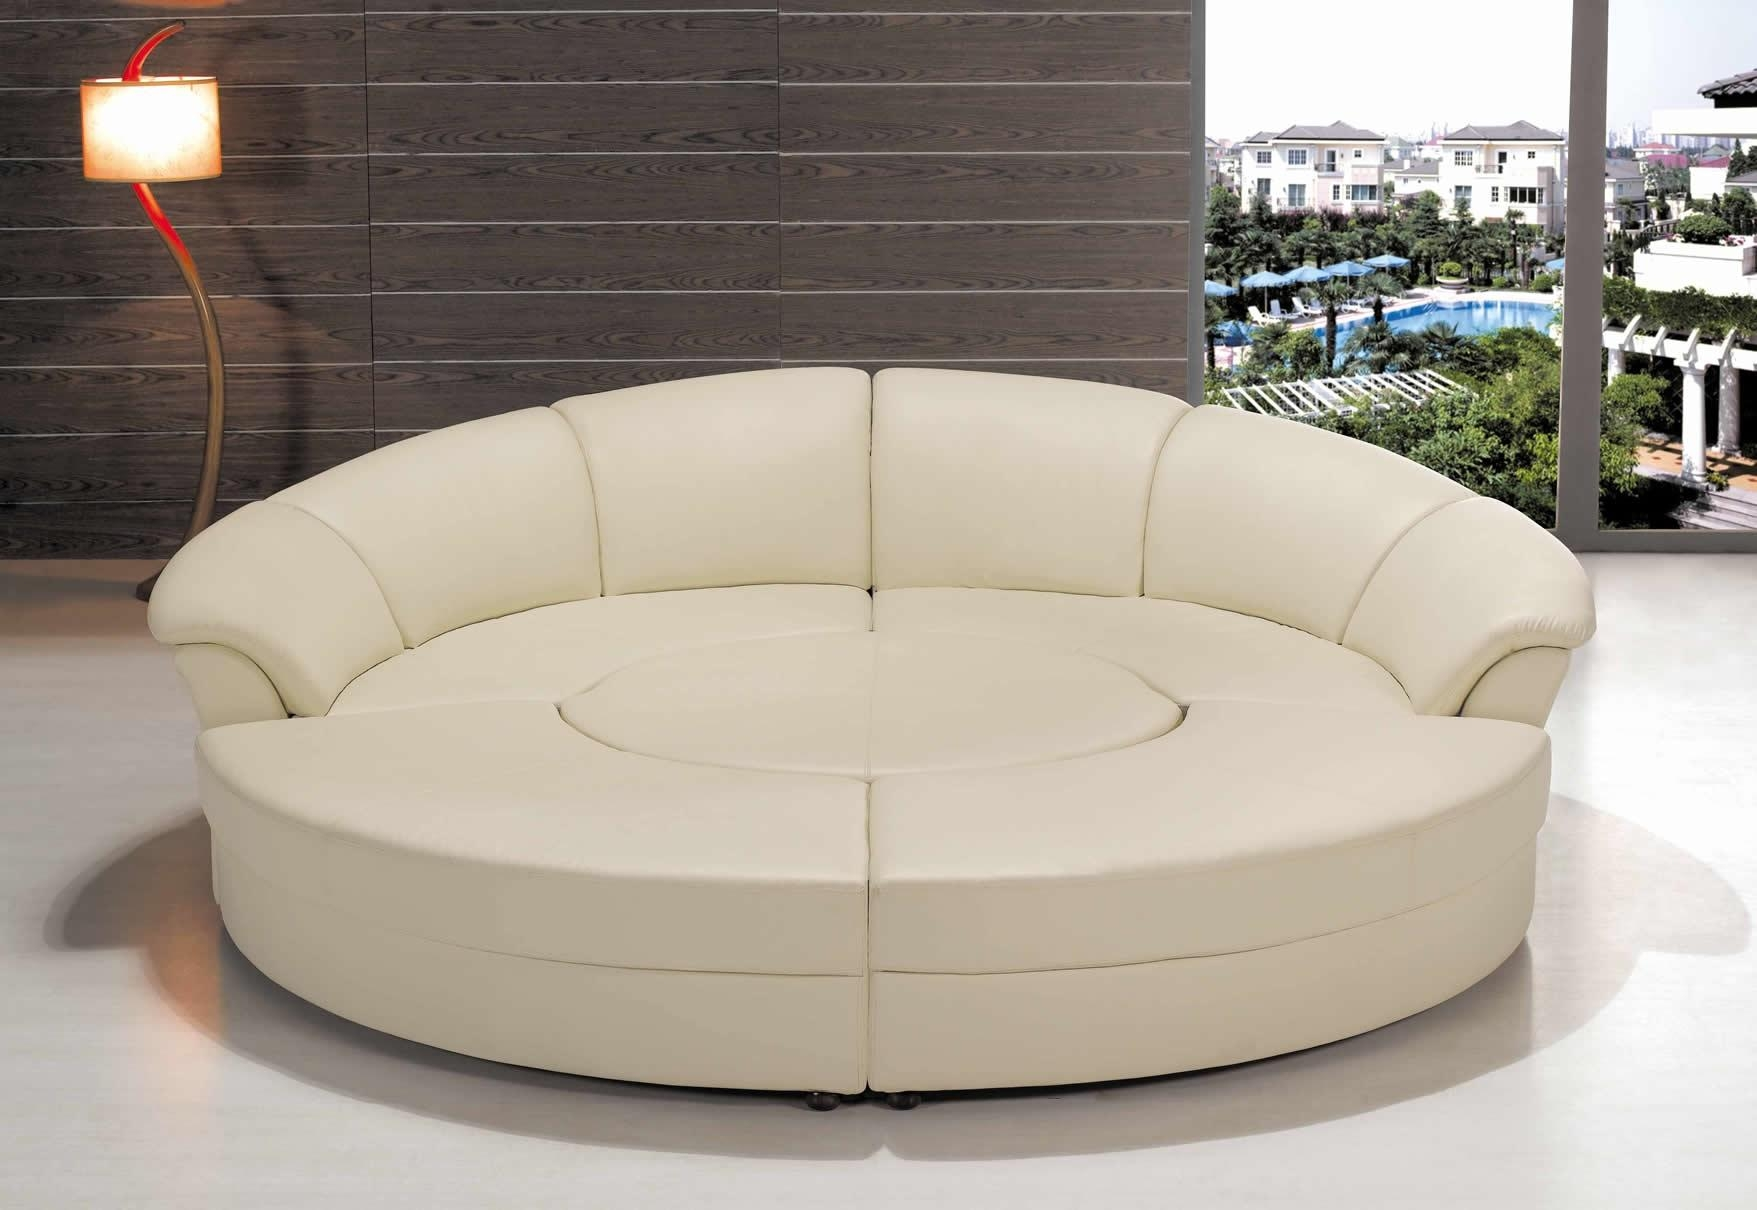 big round comfy chair lay flat beach with cup holder 20 best collection of sofa chairs ideas